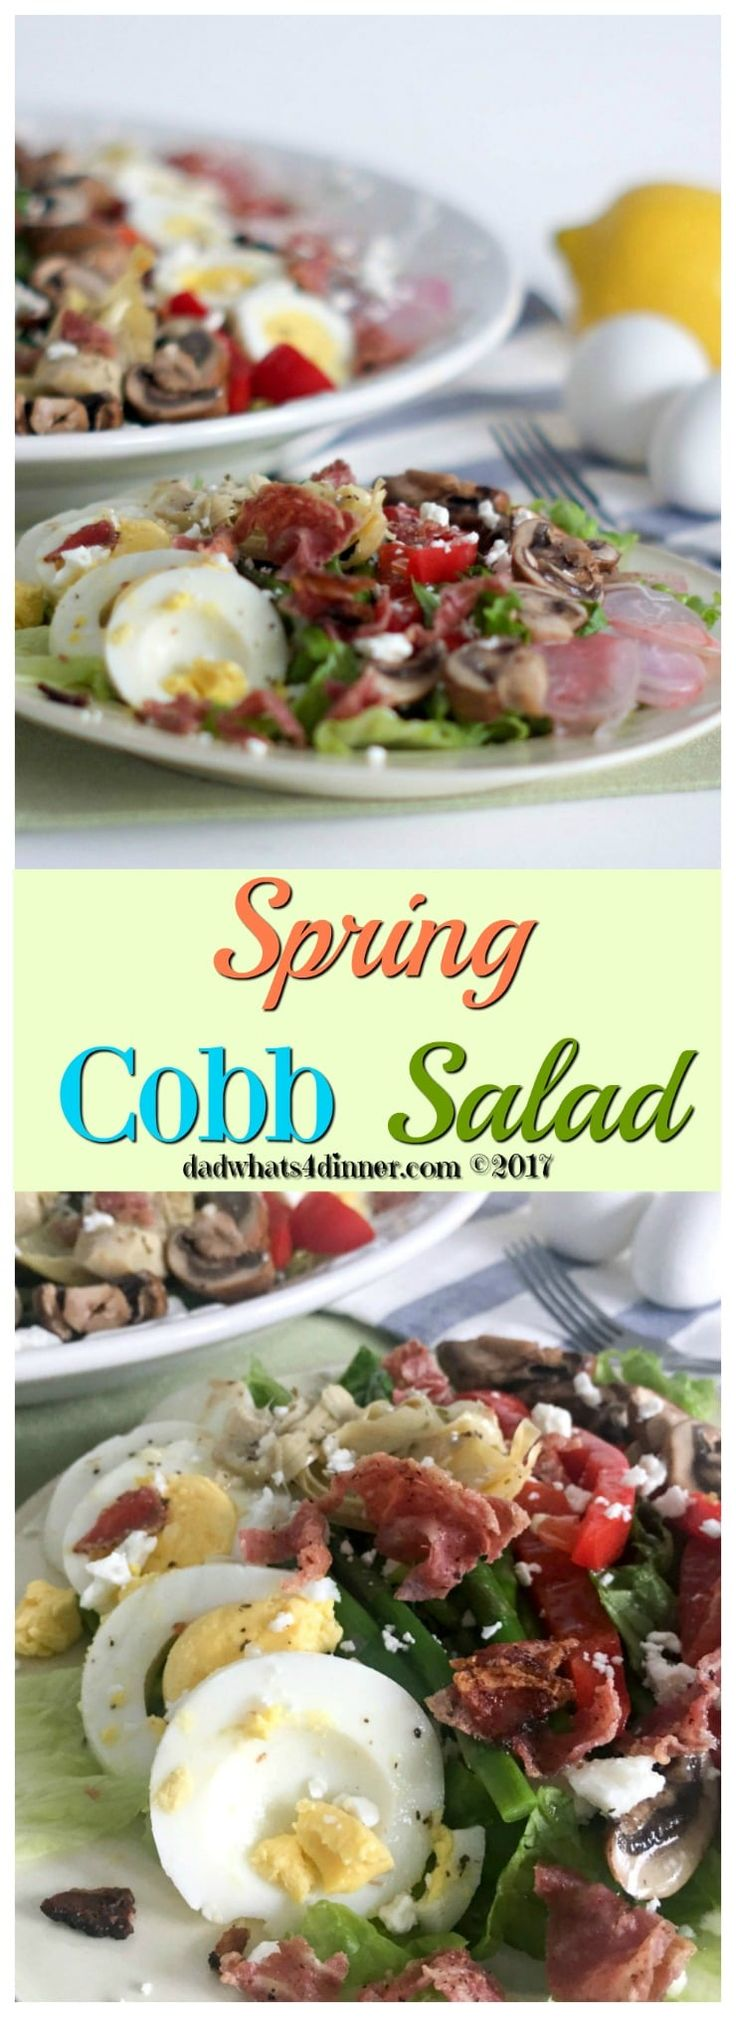 My Spring Veggie Cobb Salad takes advantage of the fresh produce of spring. Perfect for Easter, Mother's Day, a wedding shower or grill out! via @dadwhats4dinner